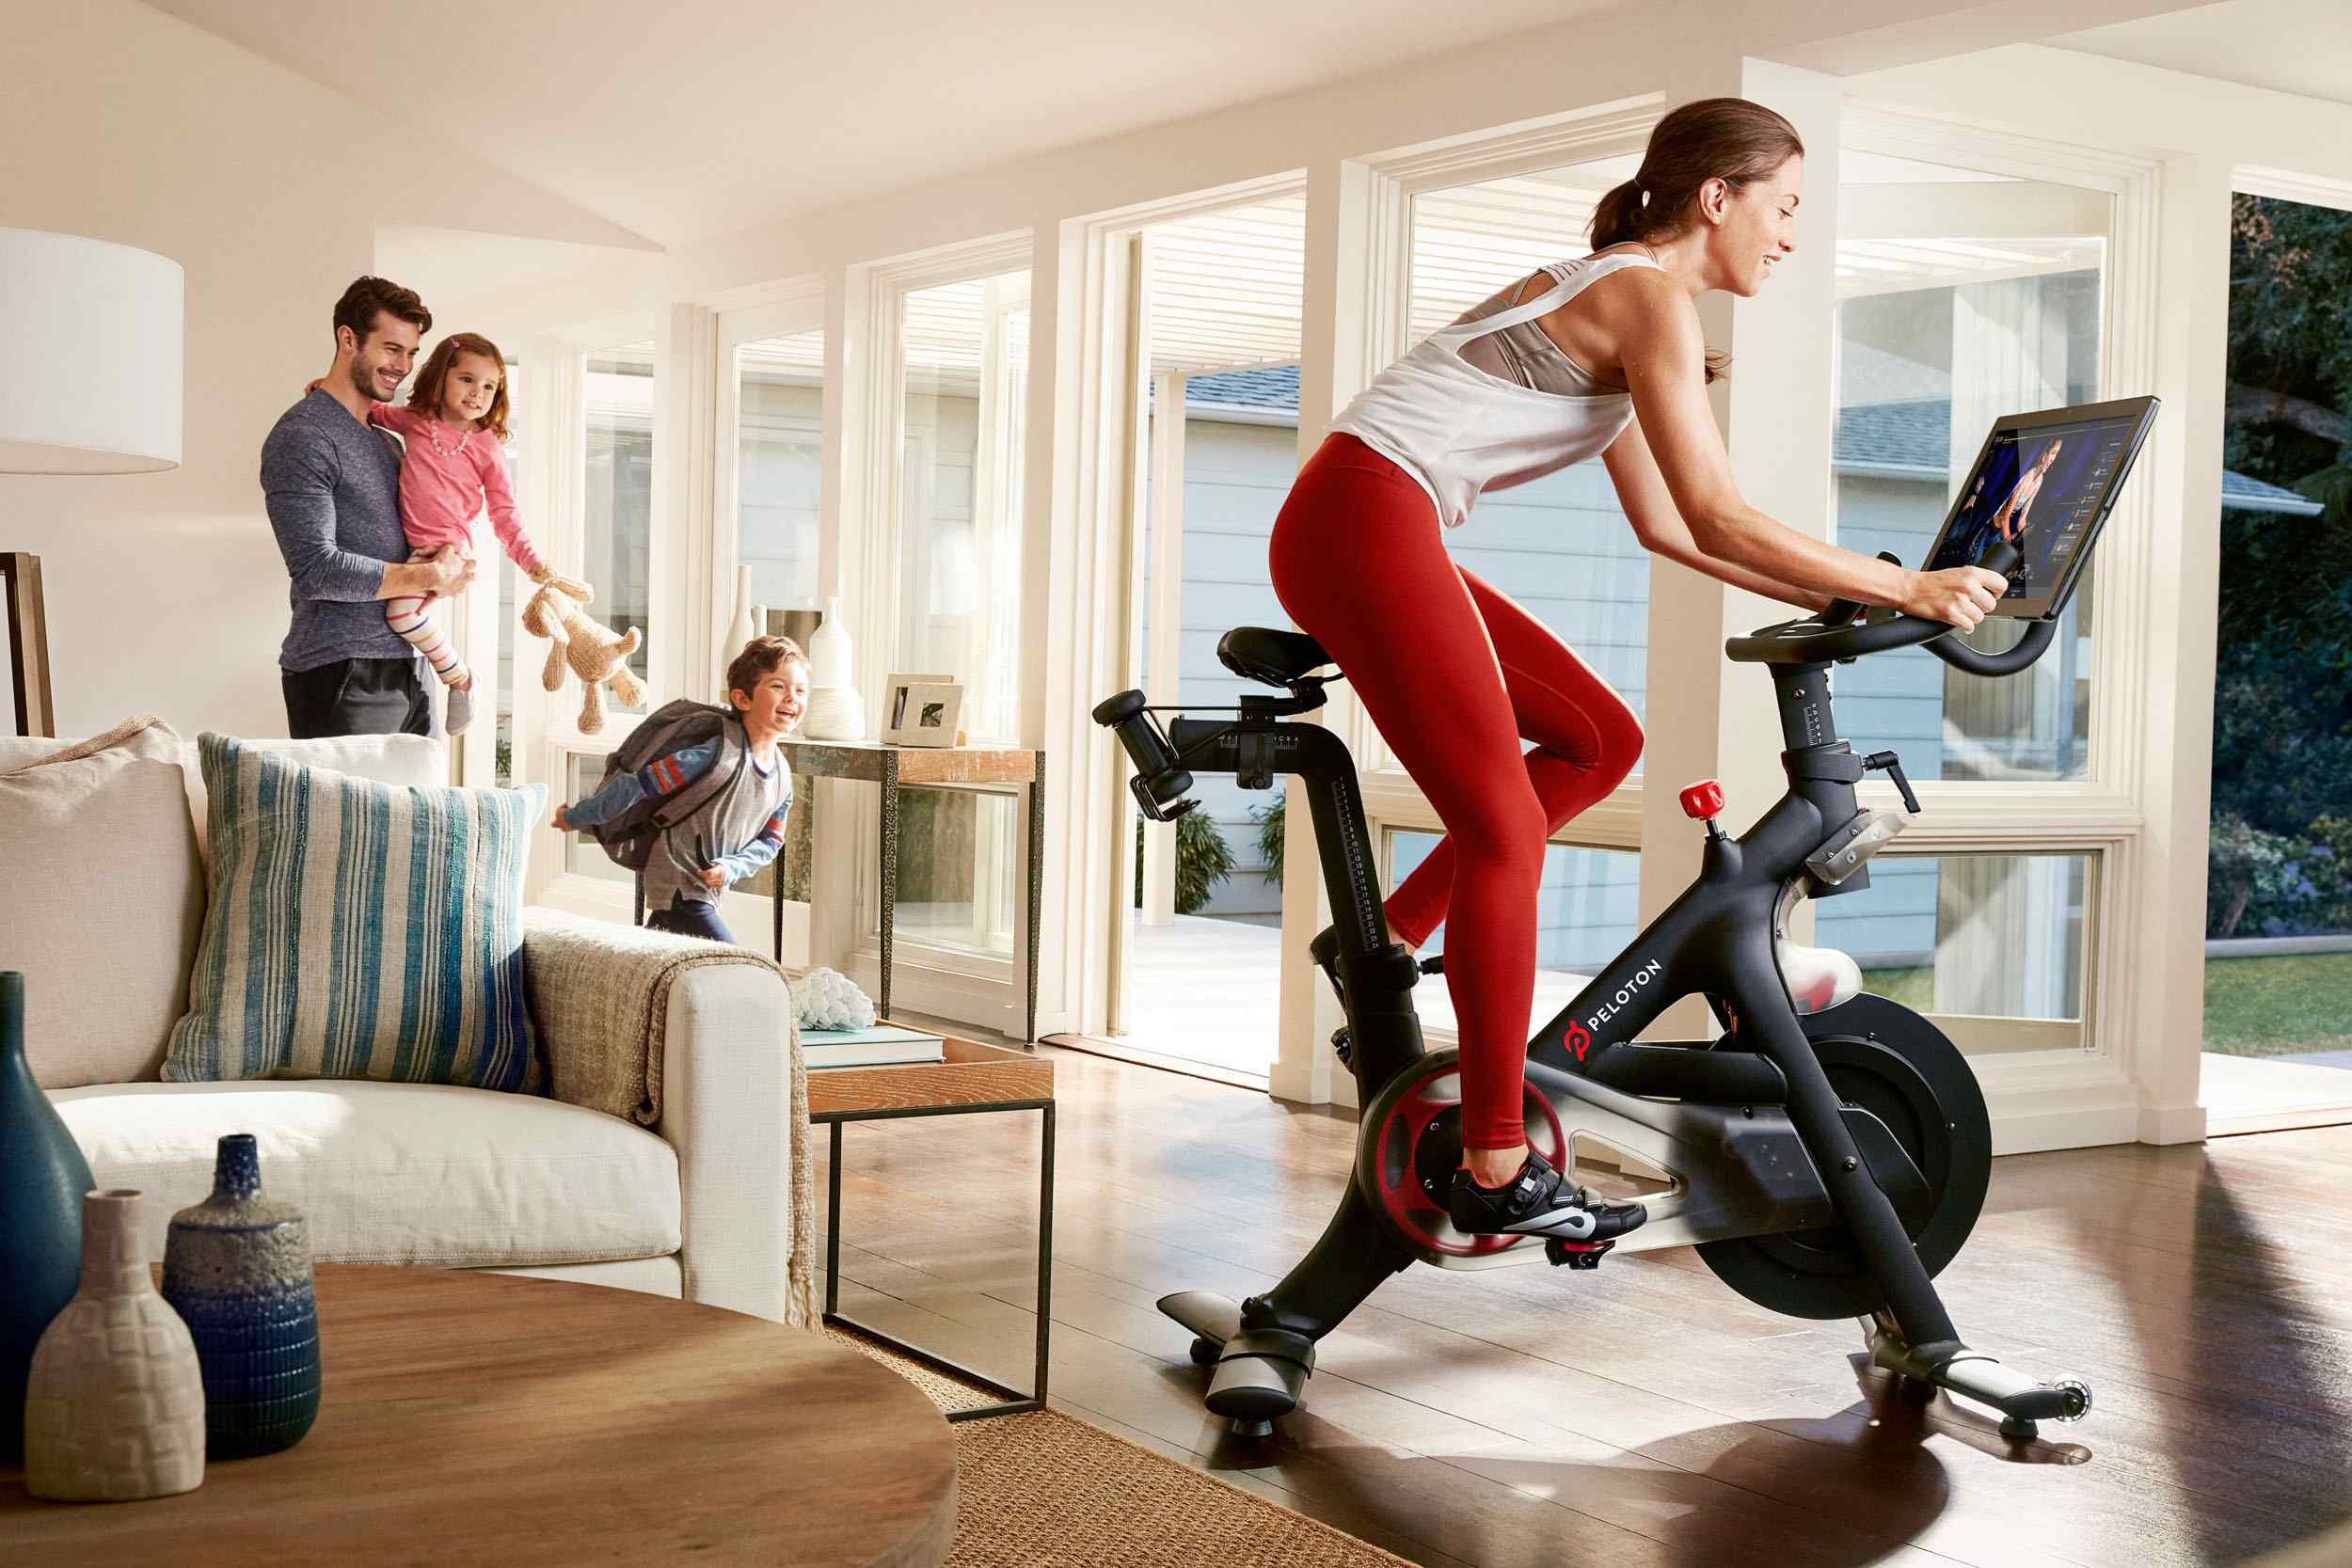 will peloton help me lose weight?